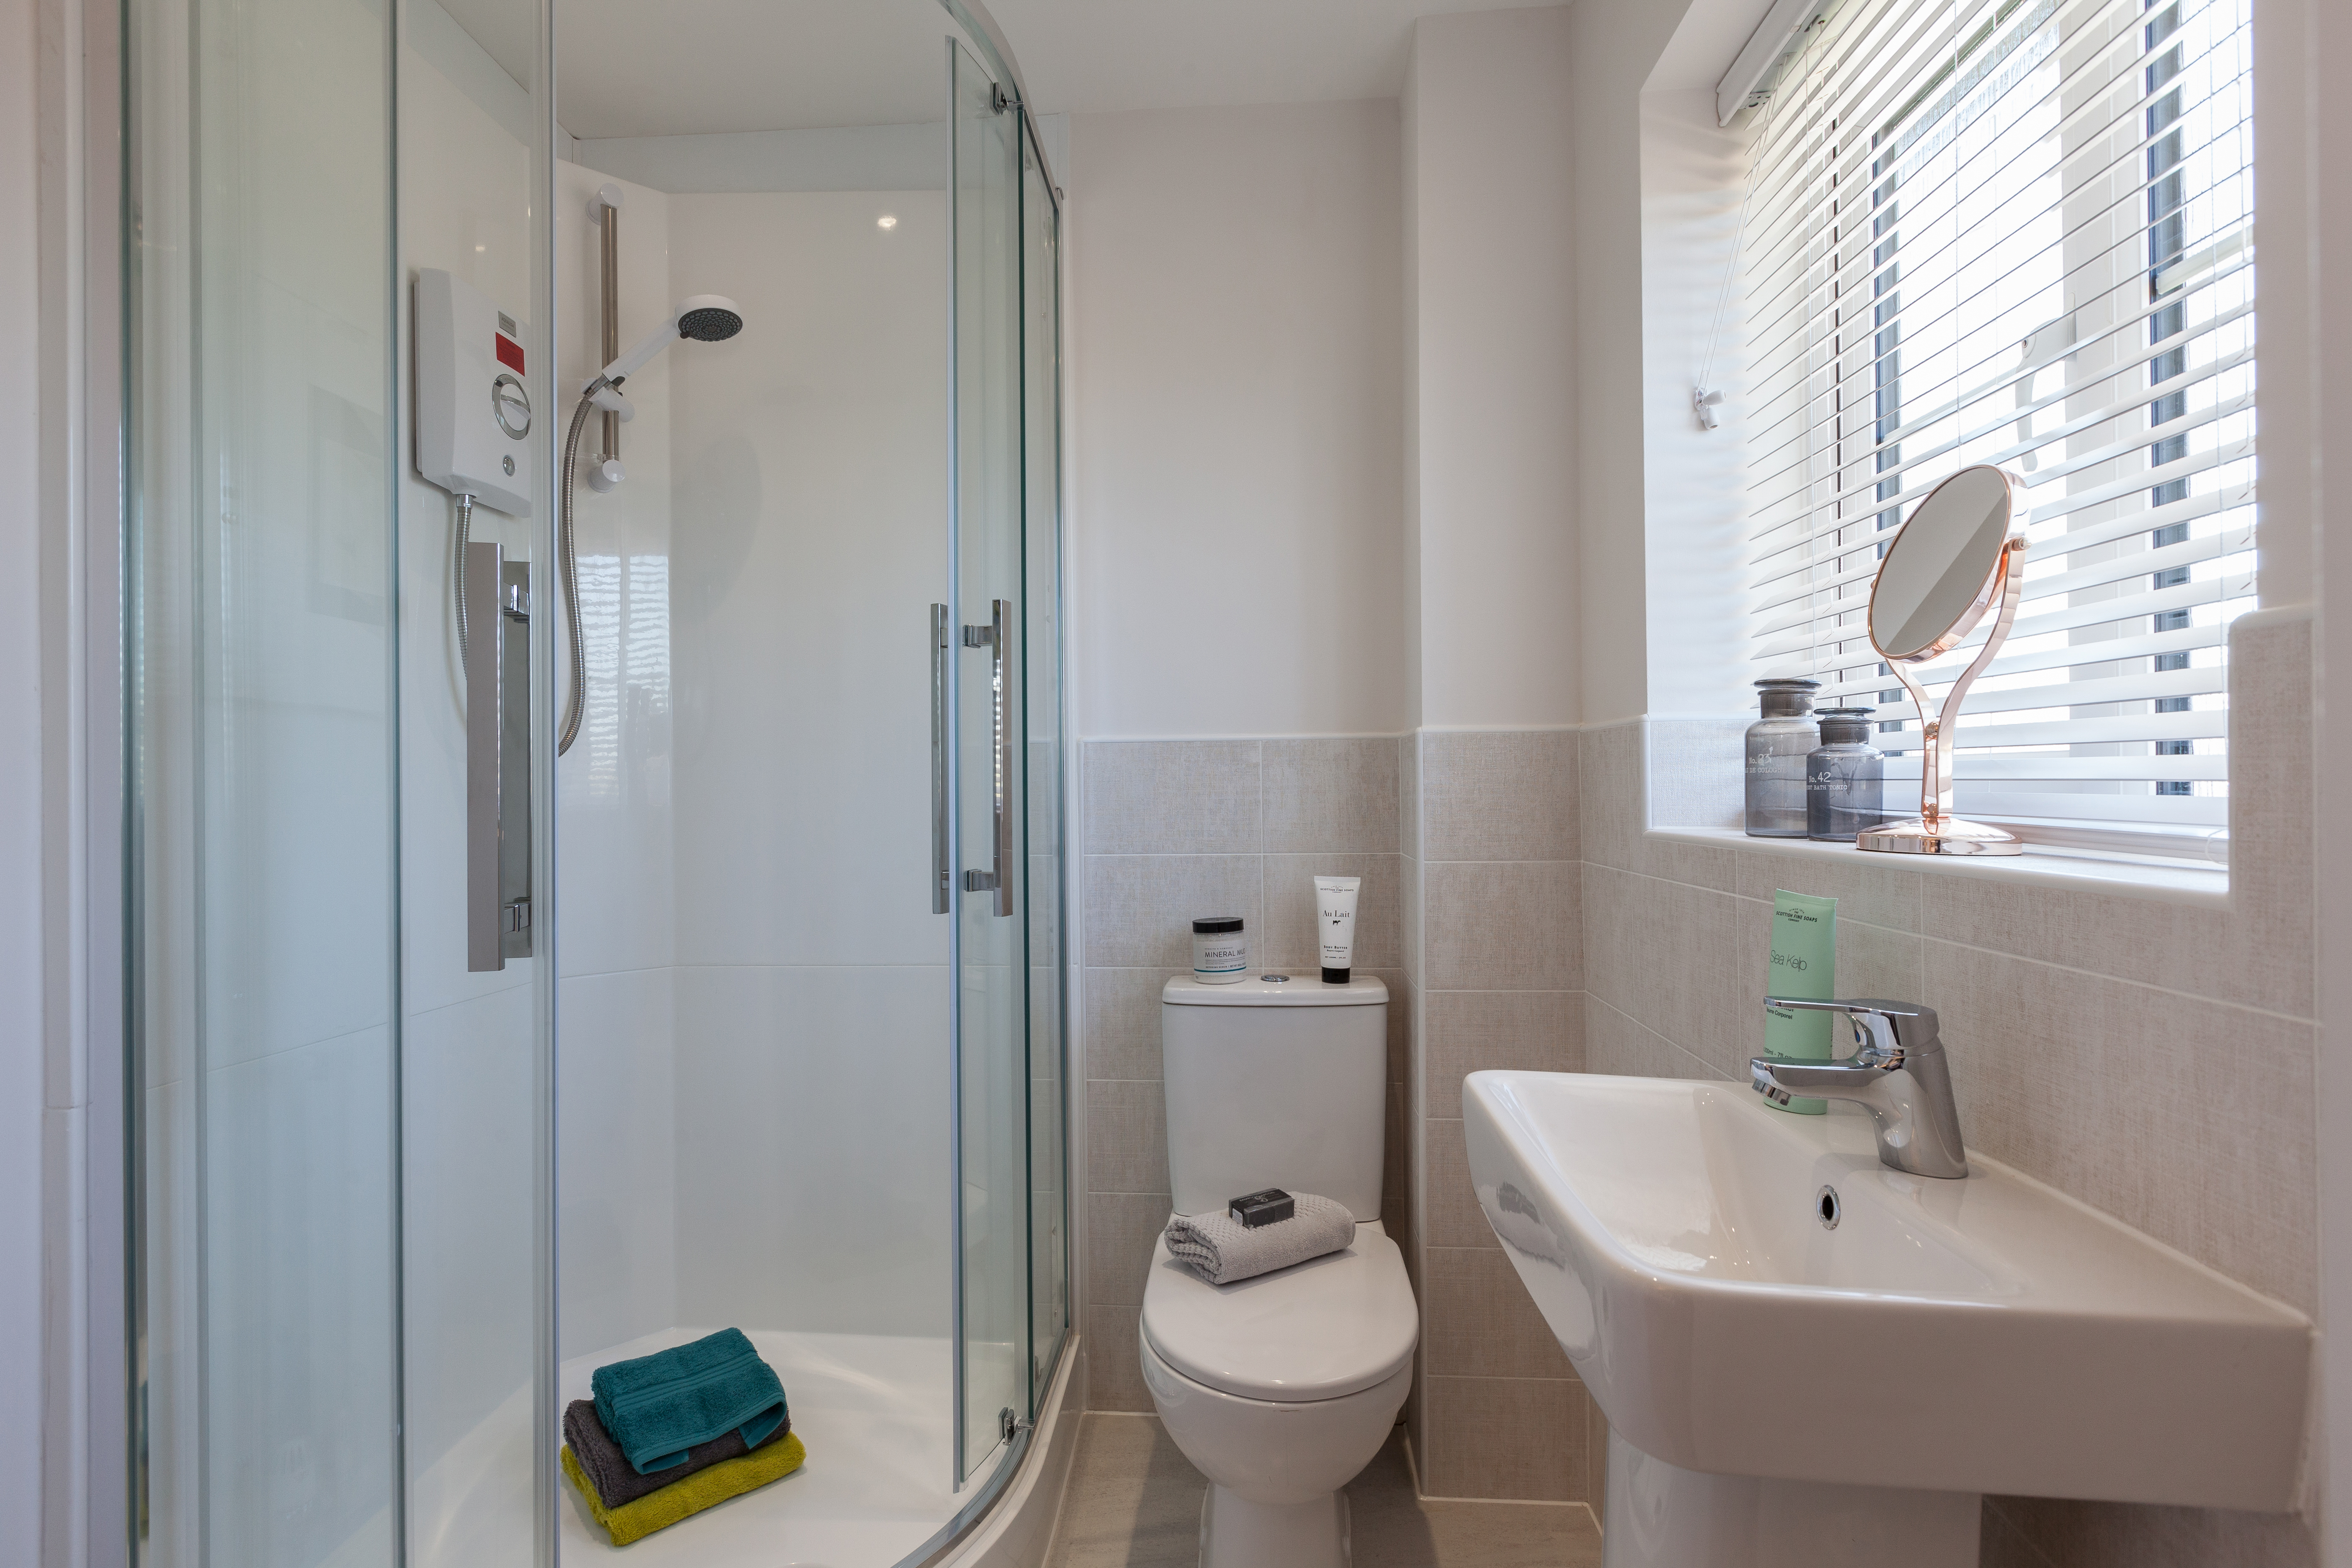 TW NM_Pastures New_Flatford_En-suite